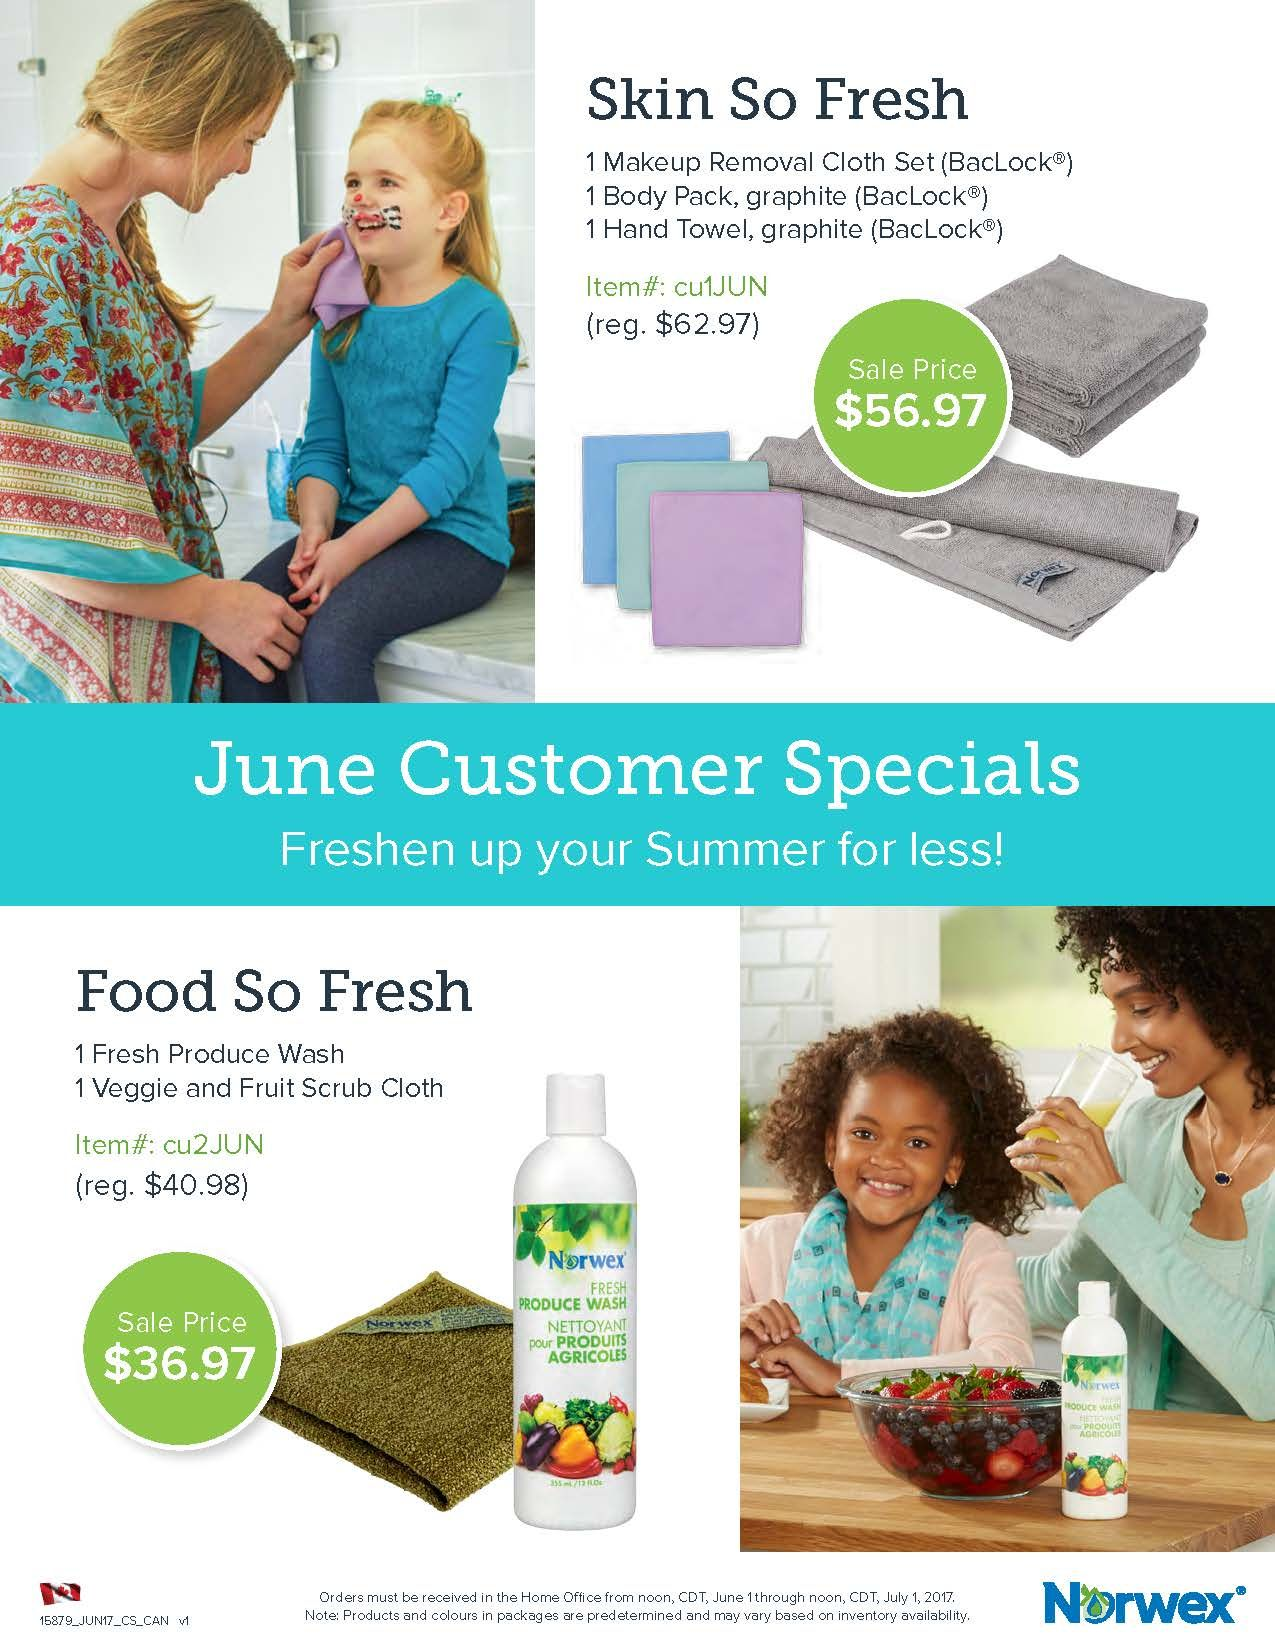 Norwex Canada June Customer Specials. Monthly specials are